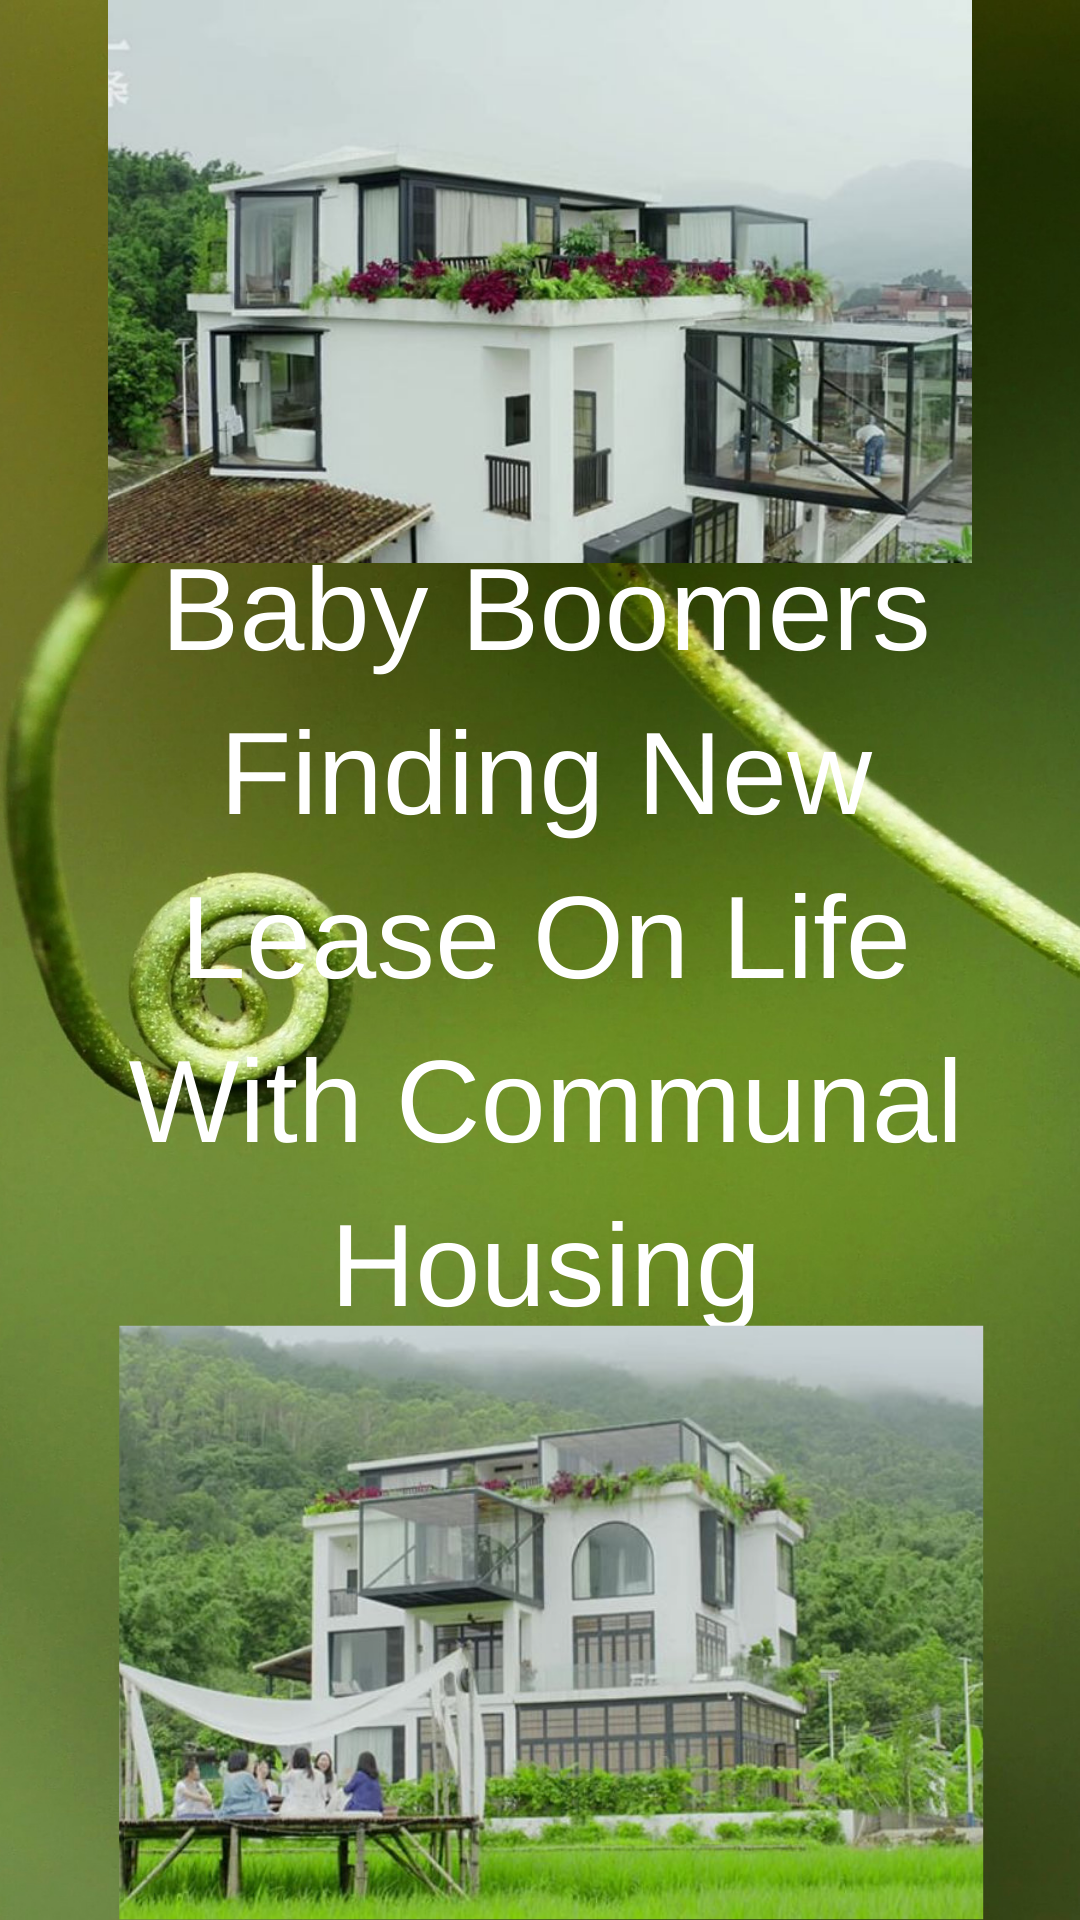 Baby Boomers Finding New Lease On Life With Communal ...